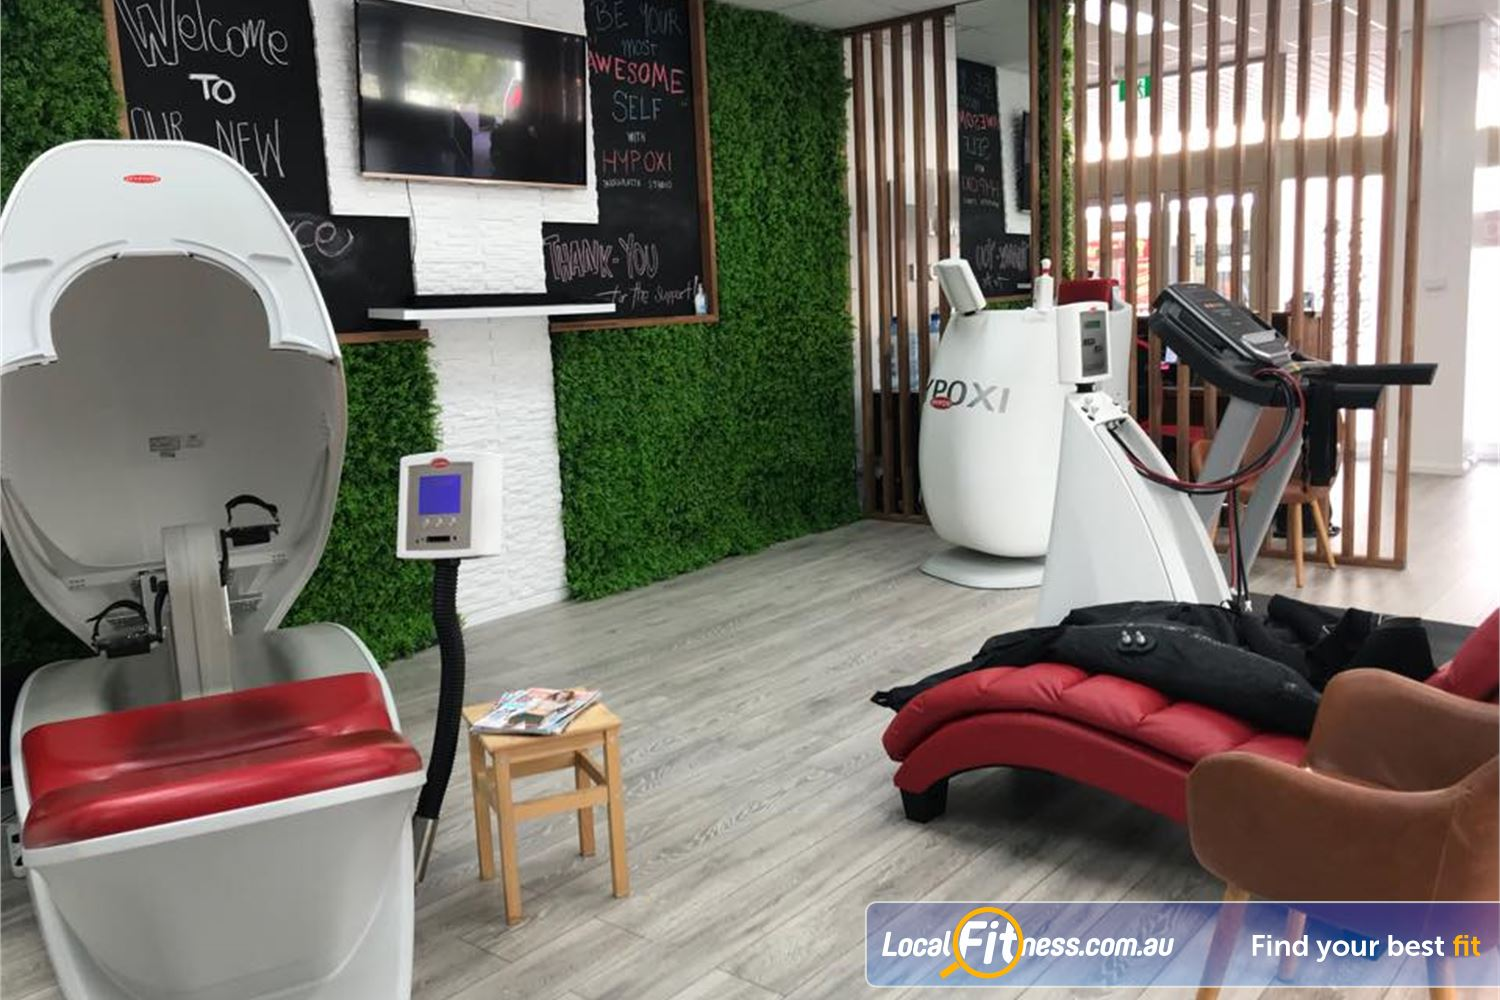 HYPOXI Weight Loss Newtown All it takes is 30 minutes of low-impact exercise in our Newtown weight-loss studio.